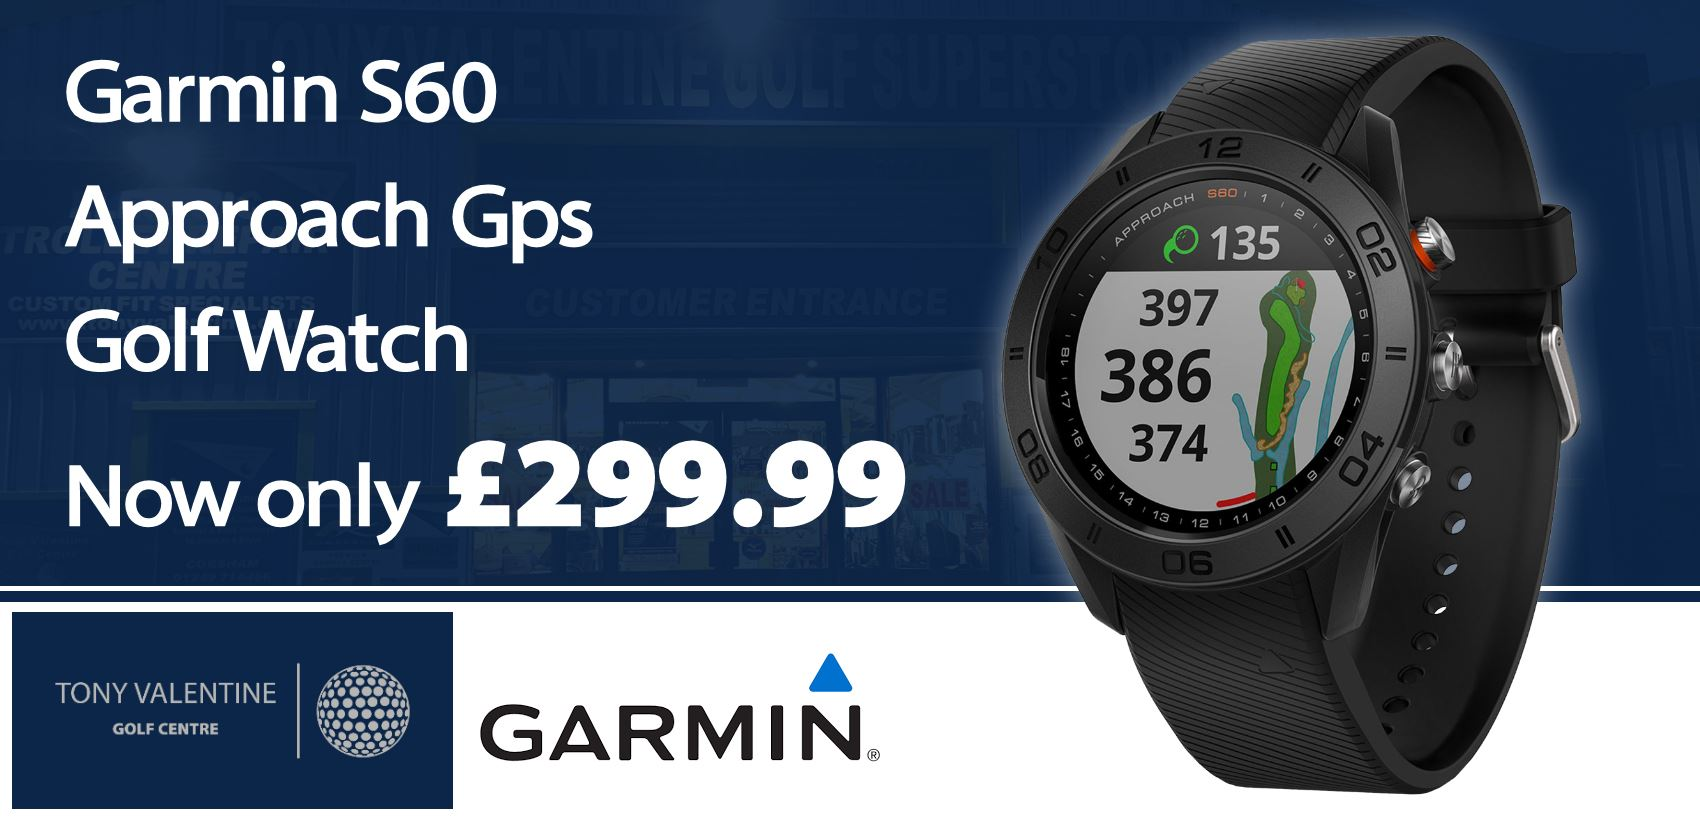 Garmin S60 Watch £299.99